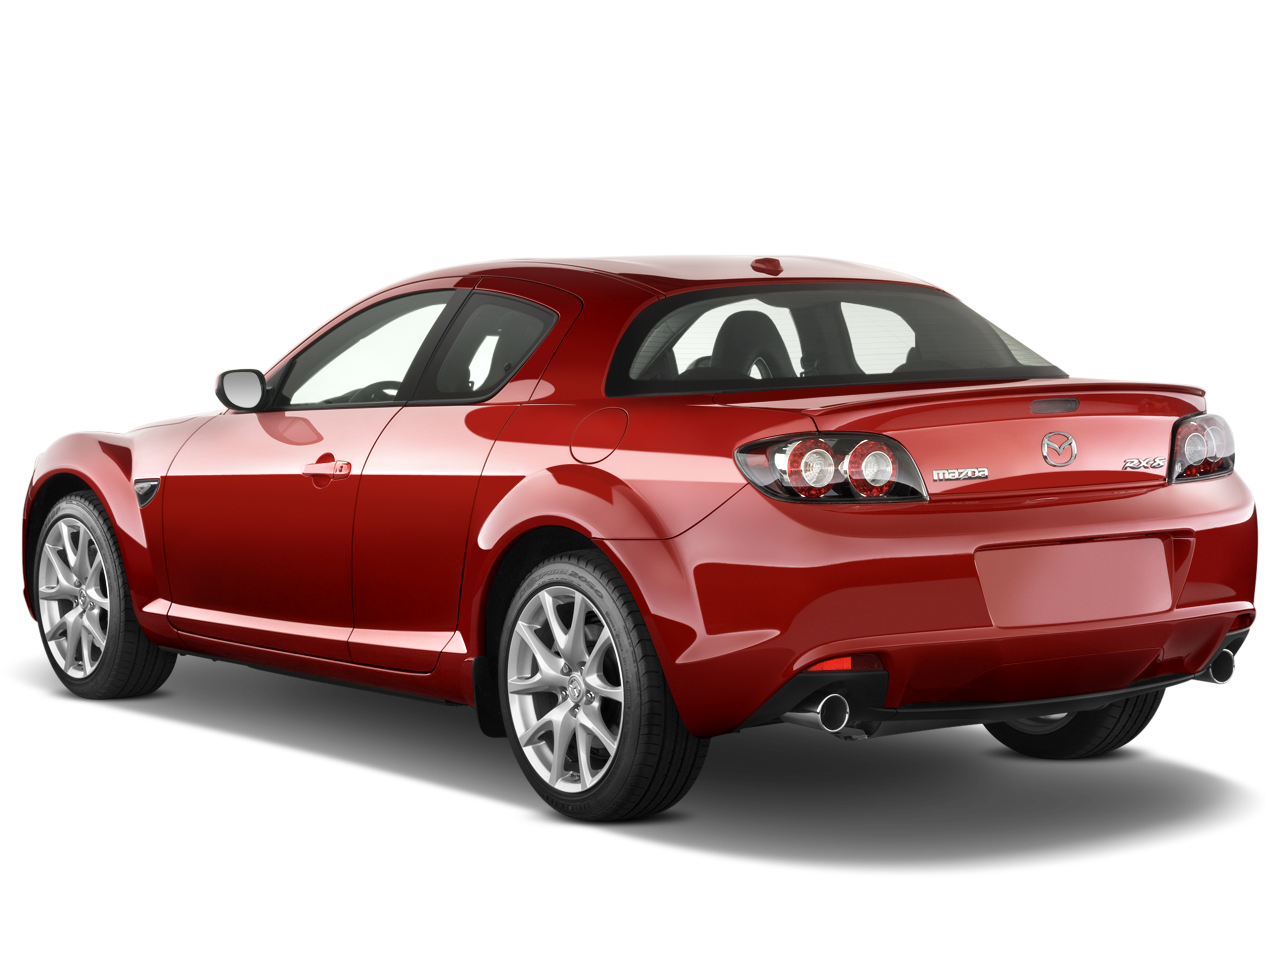 2009 Mazda Rx 8 Latest News Reviews And Auto Show